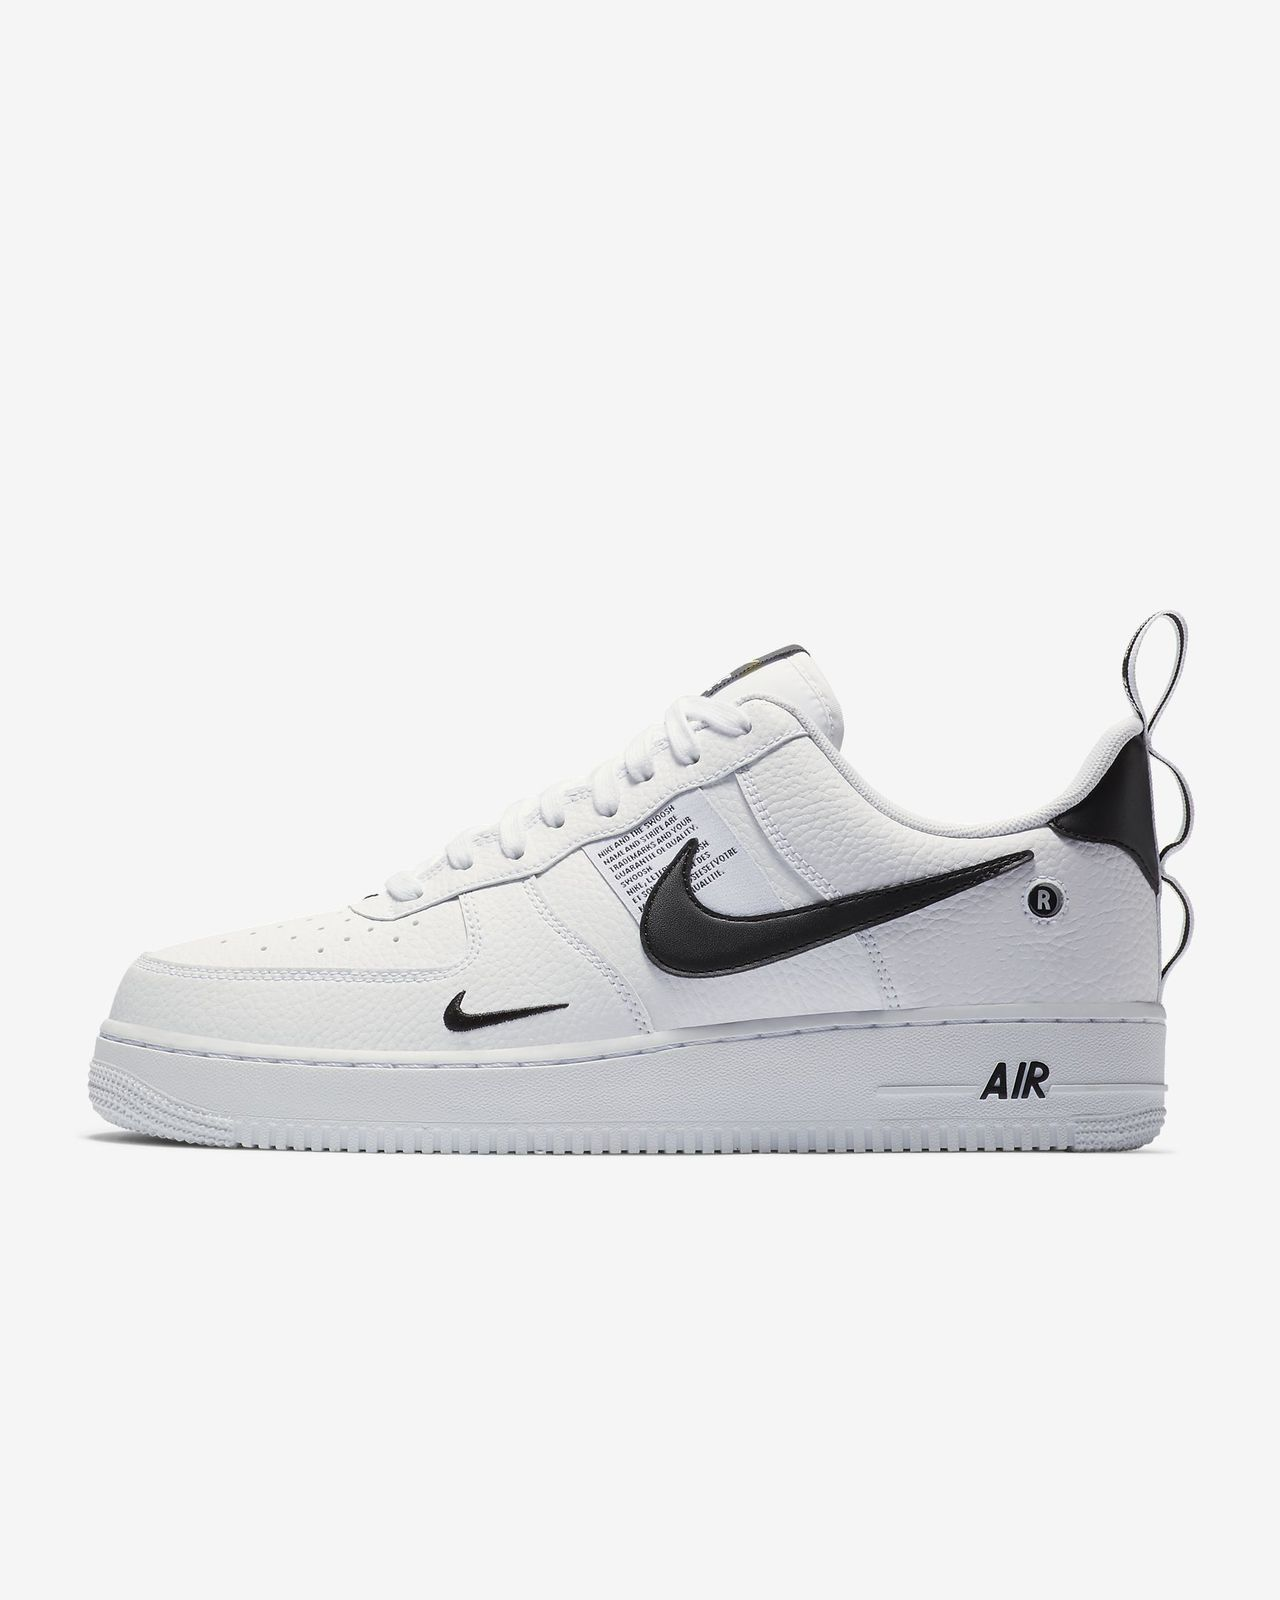 Nike Air Force 1 '07 LV8 Utility | Zapatos, Zapatillas, Zapas